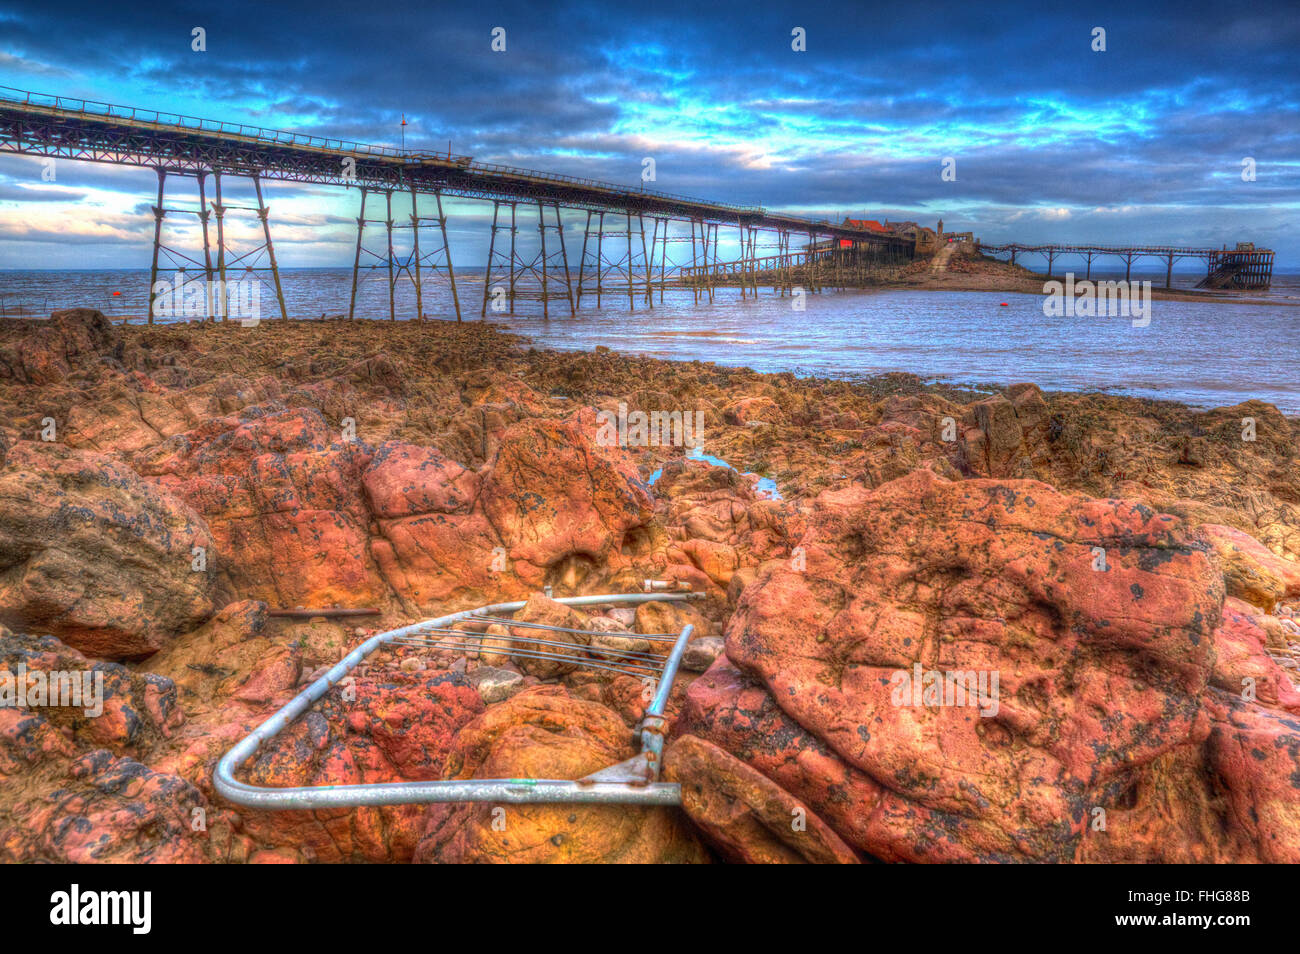 Birnbeck island pier Weston-super-Mare Somerset England in colourful HDR with broken debris - Stock Image